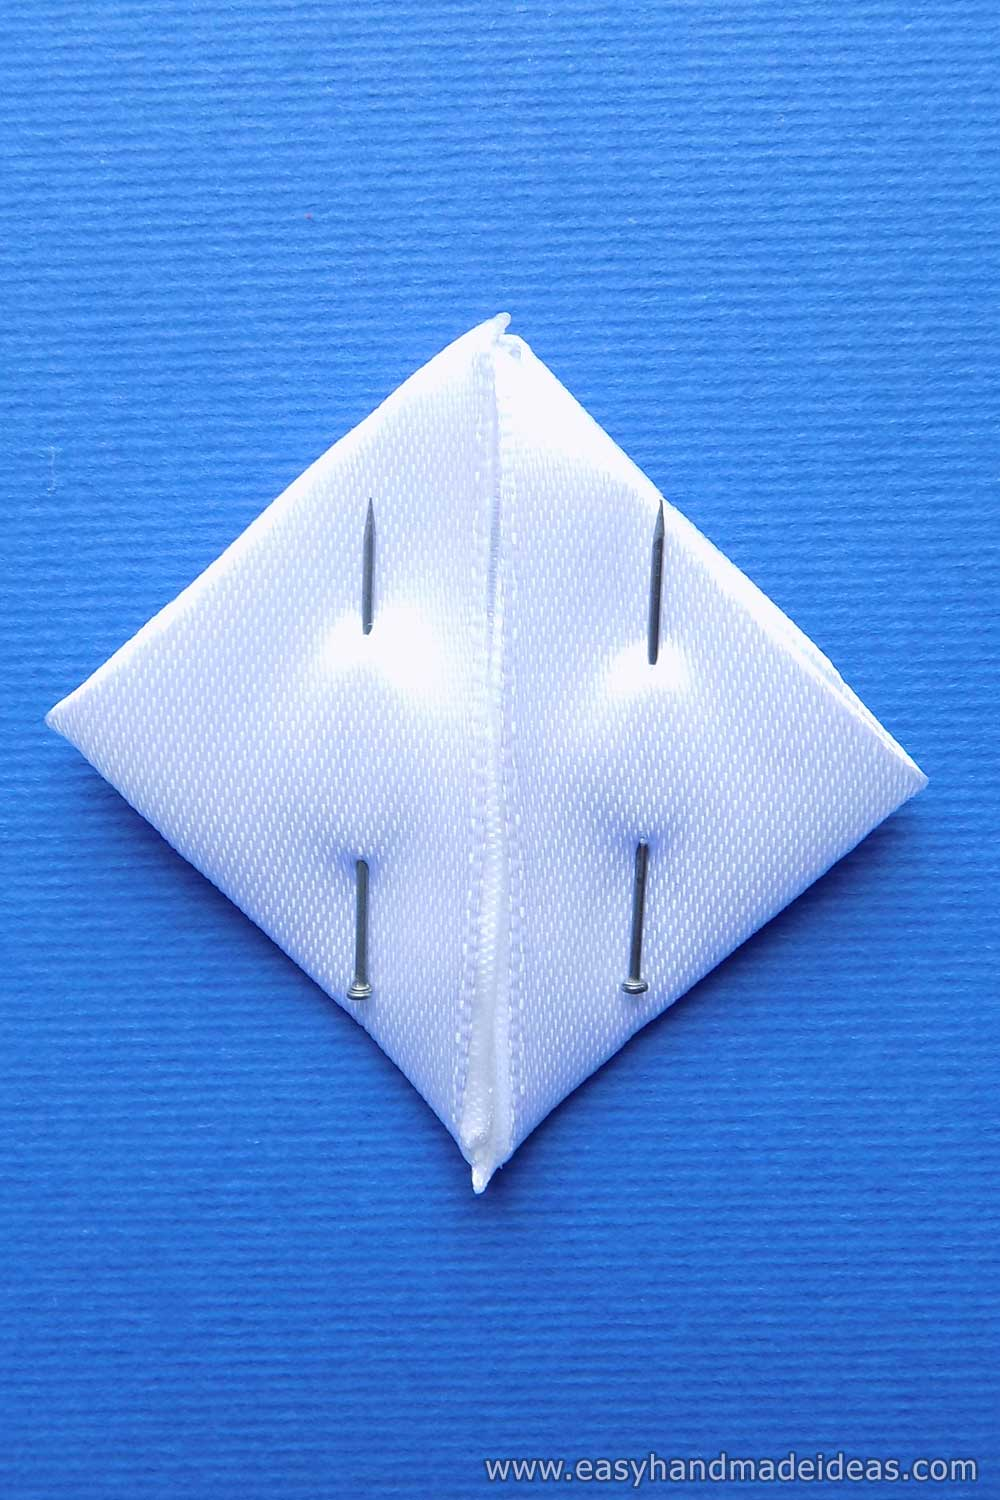 Tape with Two Pins